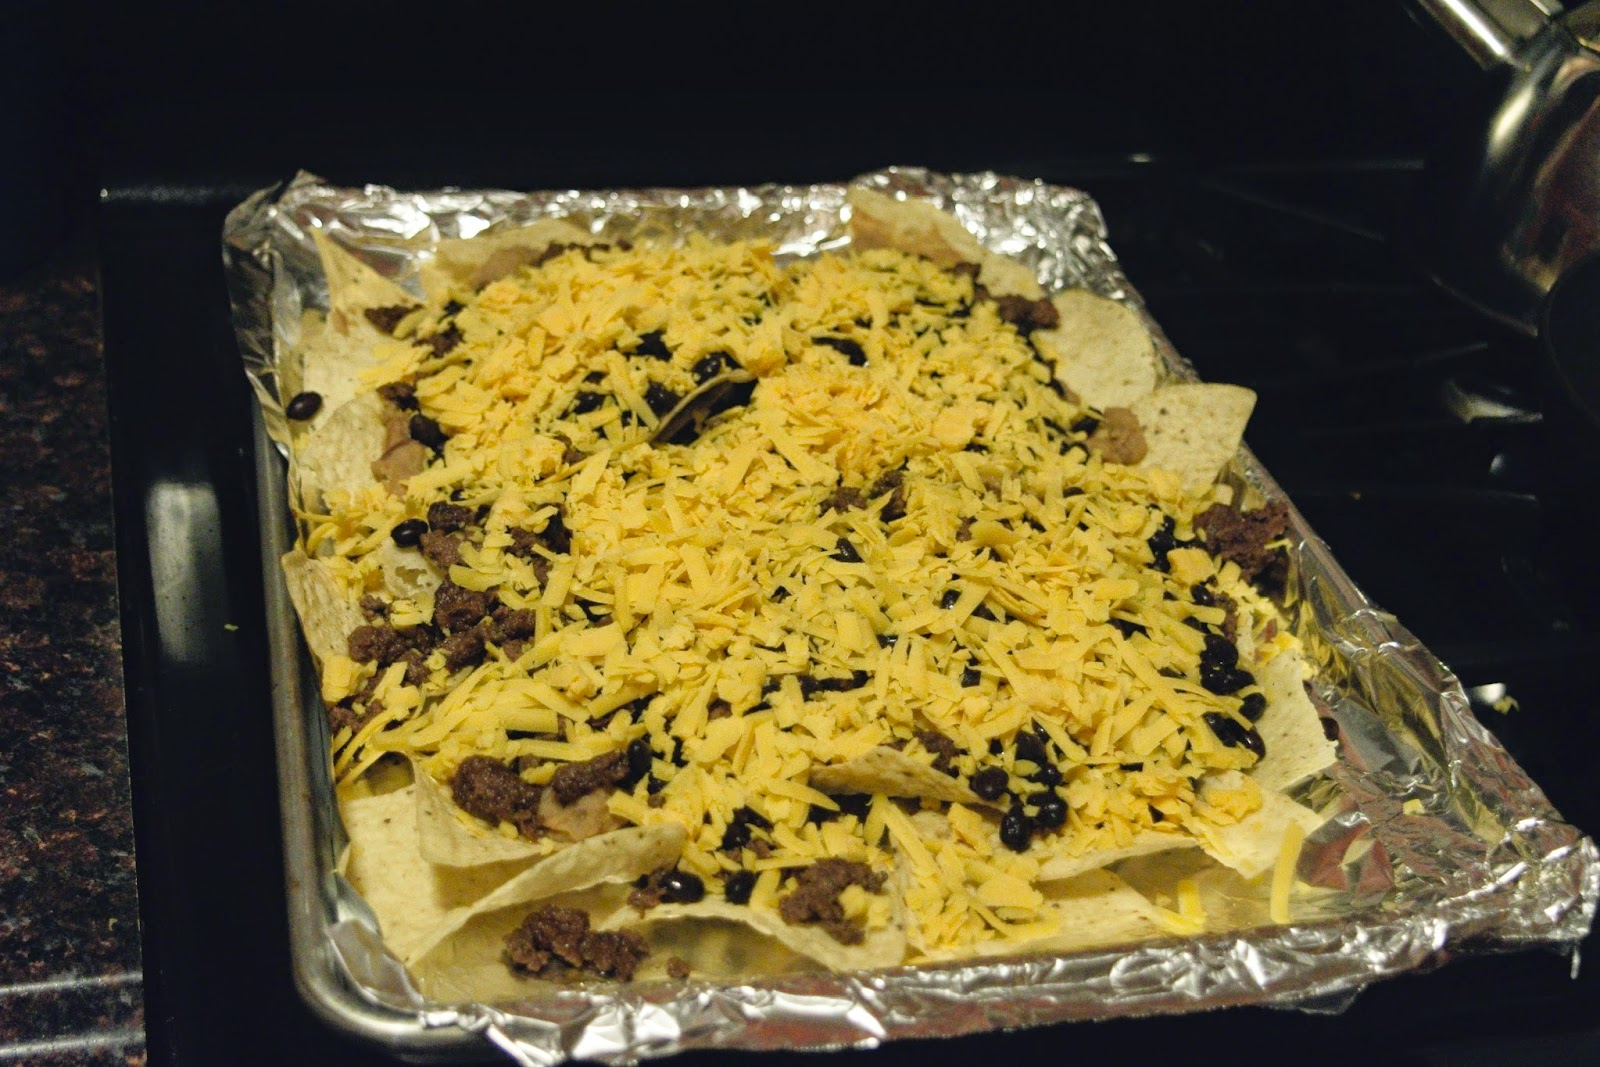 Cheese being added to the Nachos Supreme